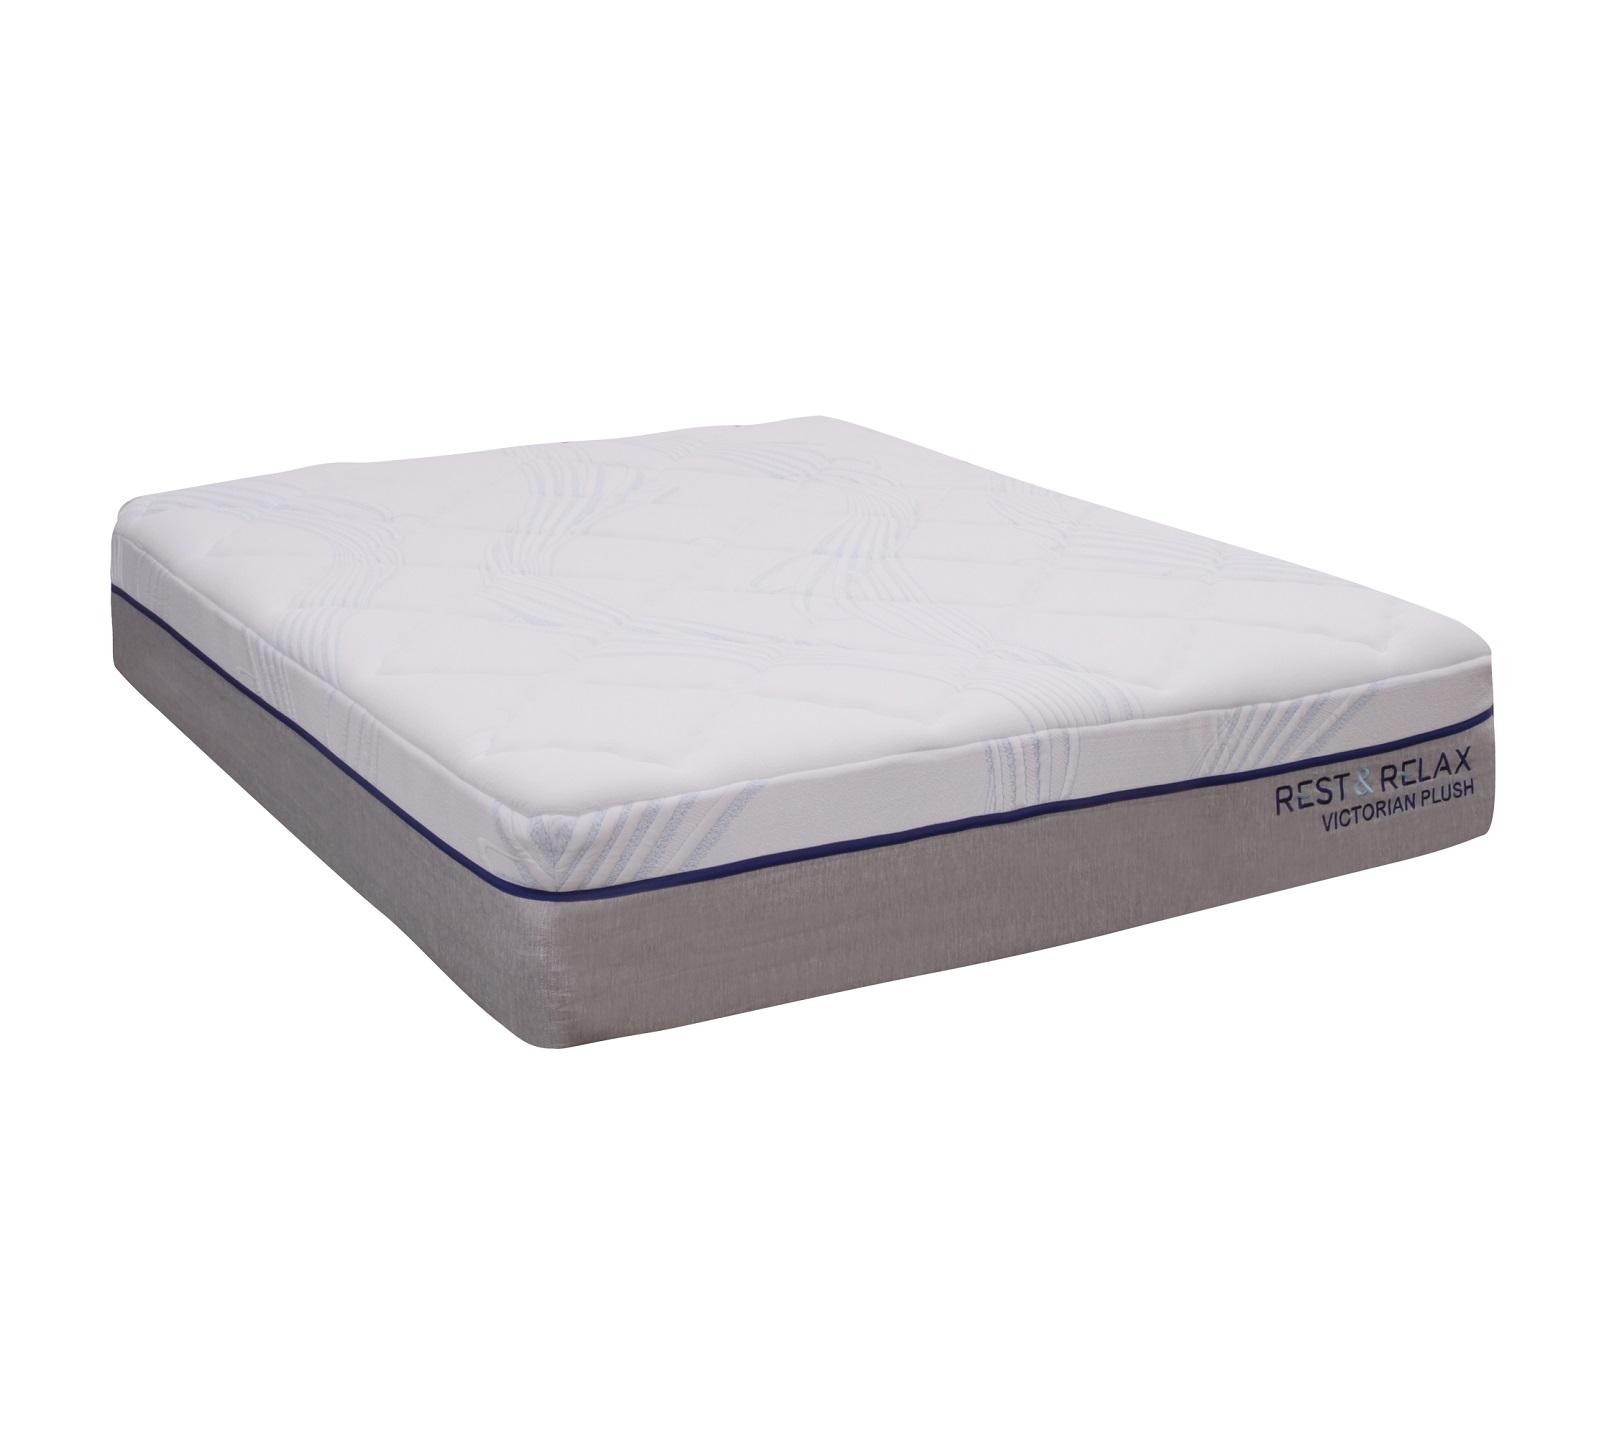 14 Inch Mattress Mattress Plus Has The Most Competitive Prices For